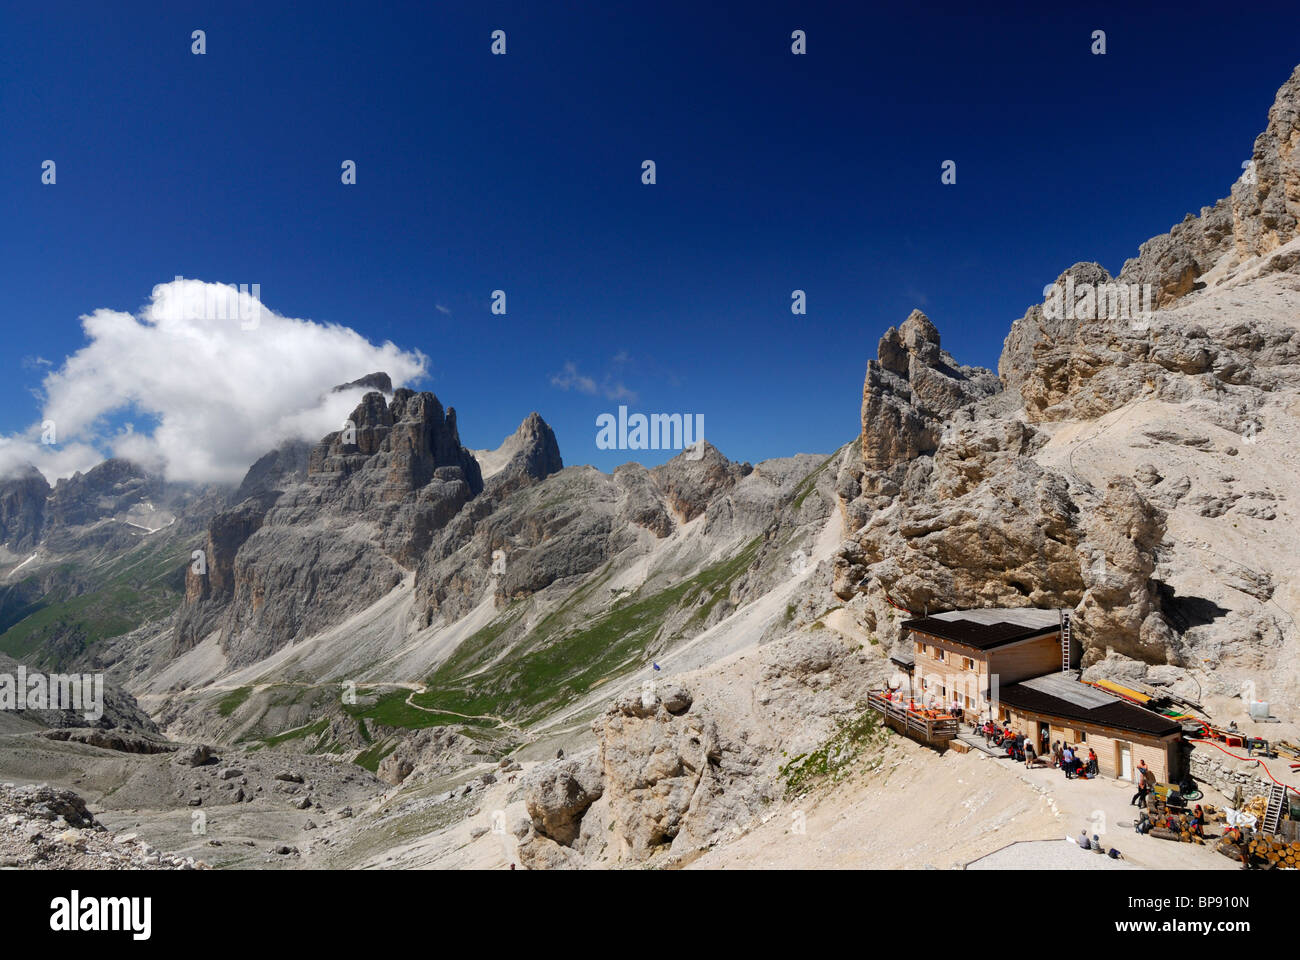 Grasleitenpass hut above Vajolet valley with Vajolet towers and king Laurin mountain face, Rosengarten group, Dolomites, - Stock Image